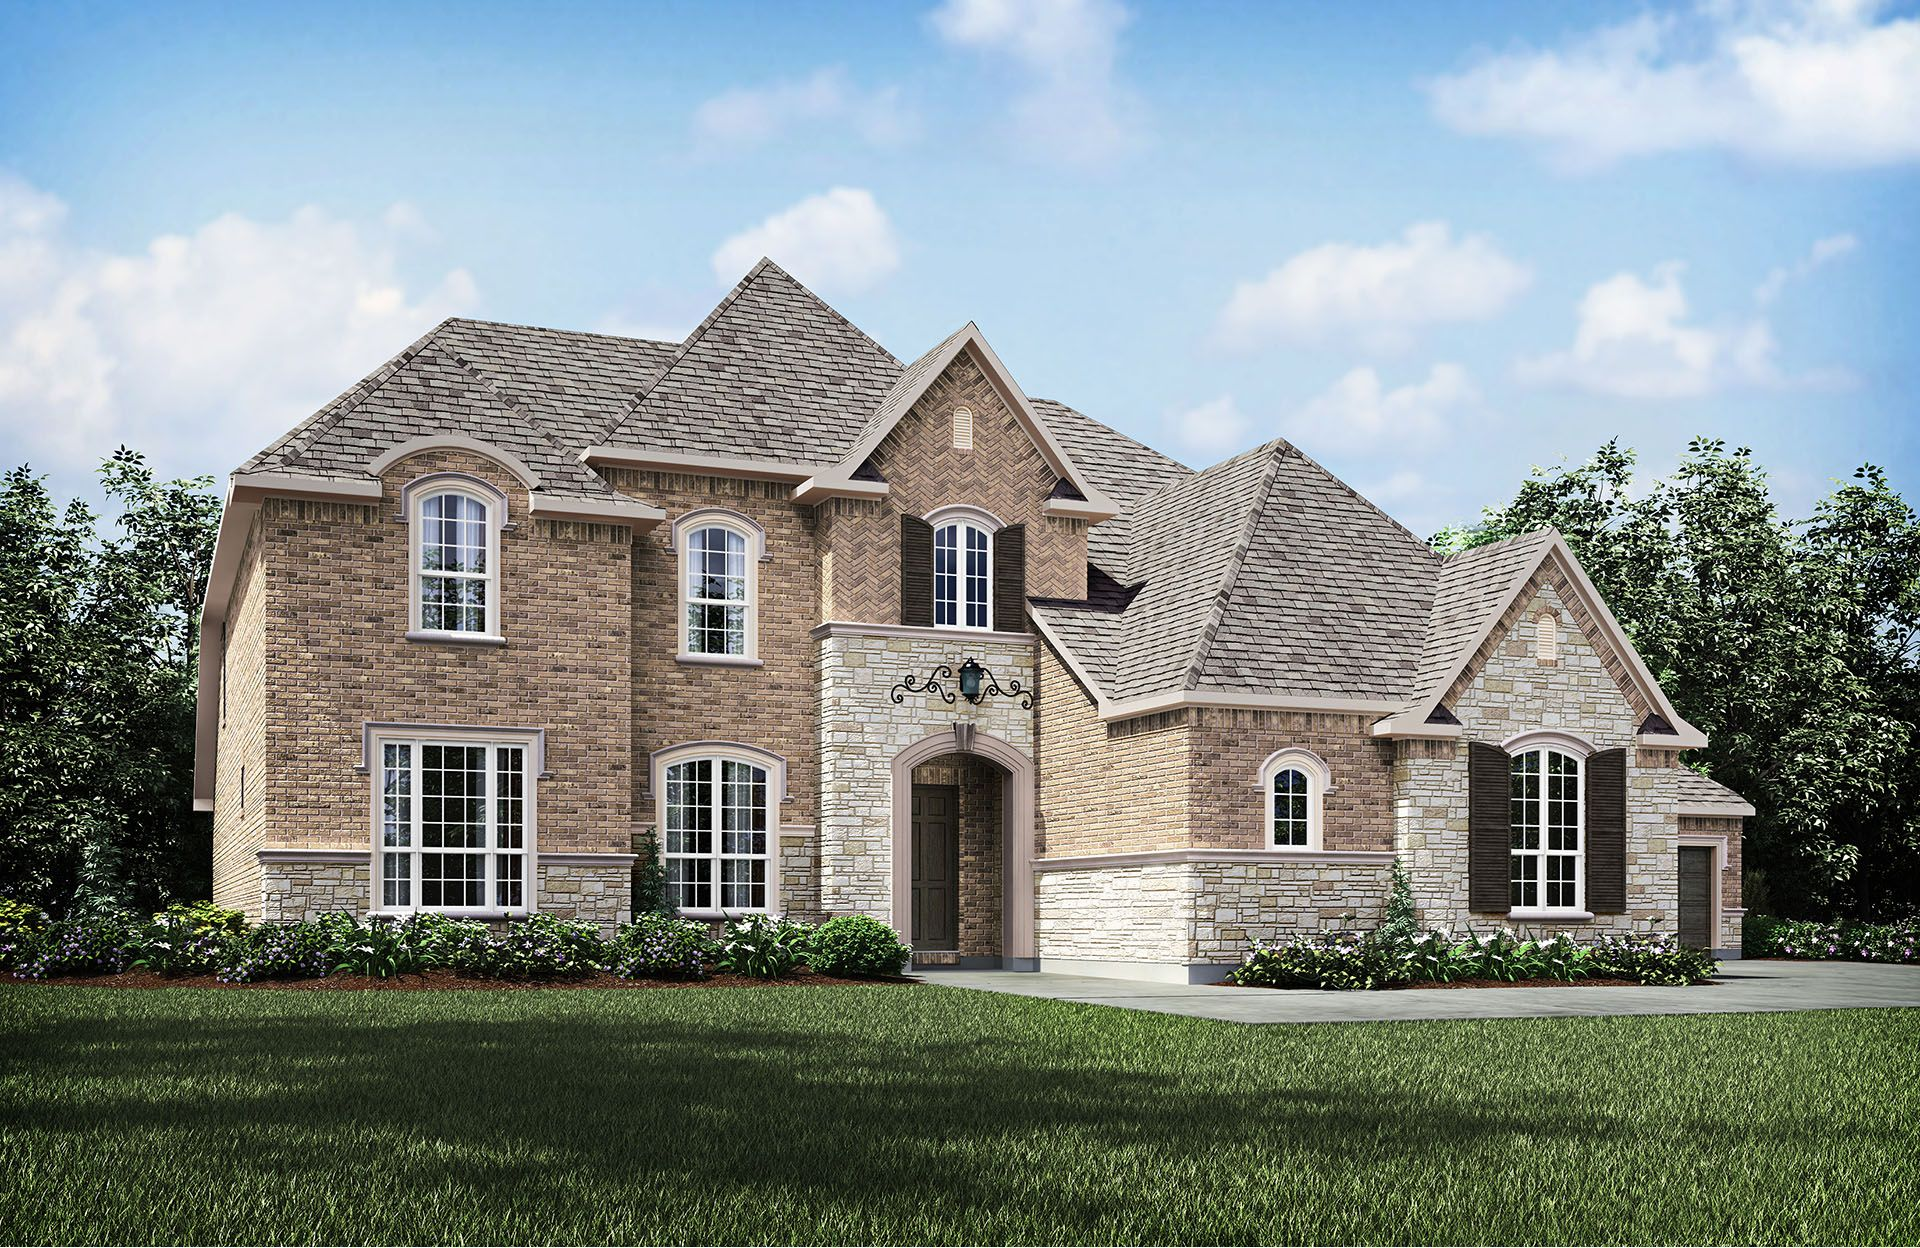 Single Family for Active at Drees On Your Lot - Dfw - Elmsdale McKinney, Texas 75070 United States